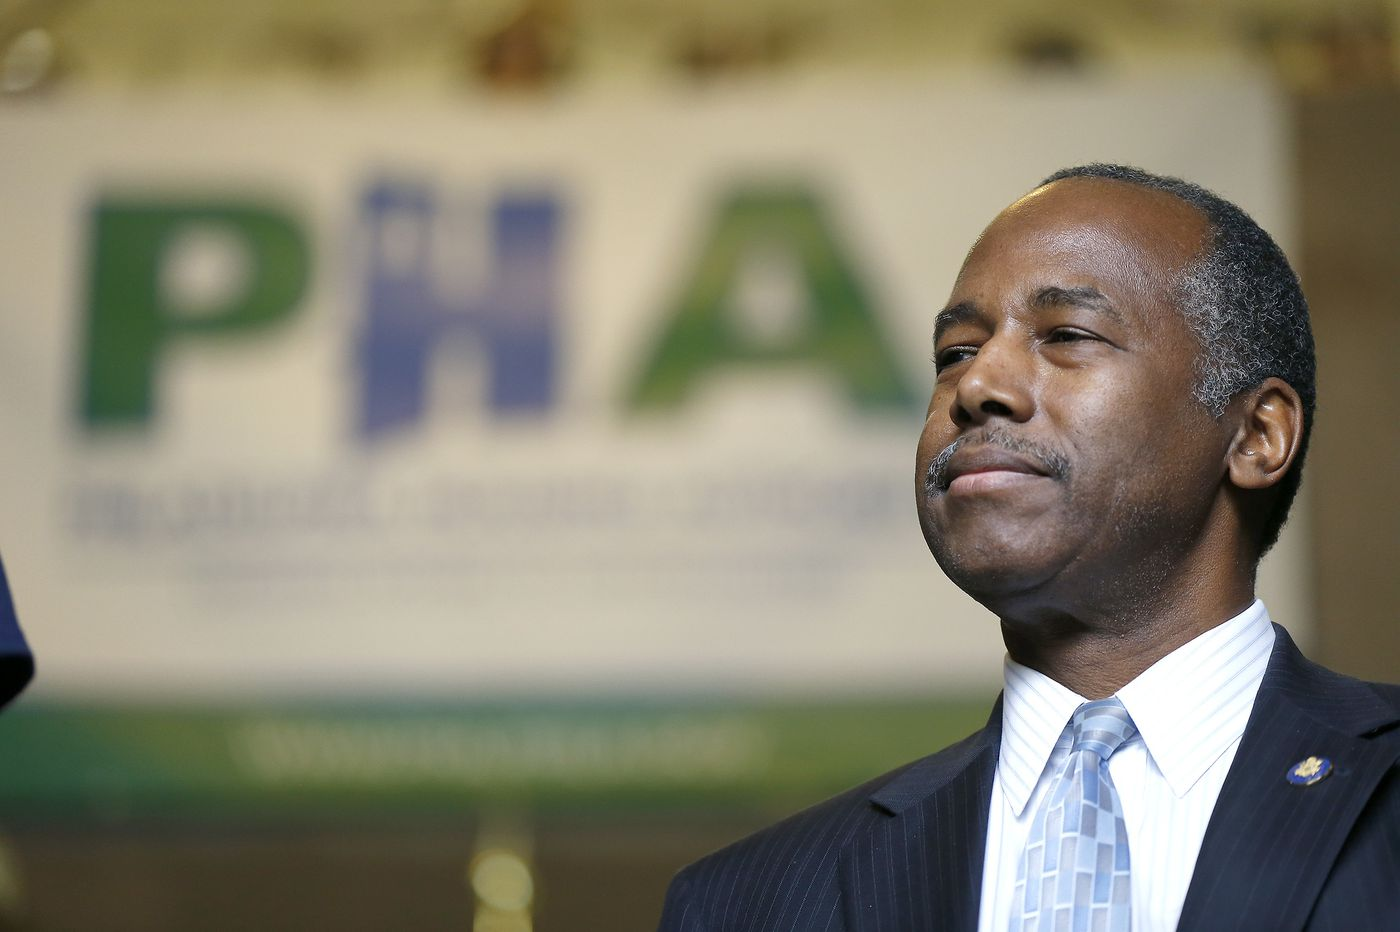 Detroit school board seeks to dishonor Ben Carson, one of city's greatest role models | Dom Giordano